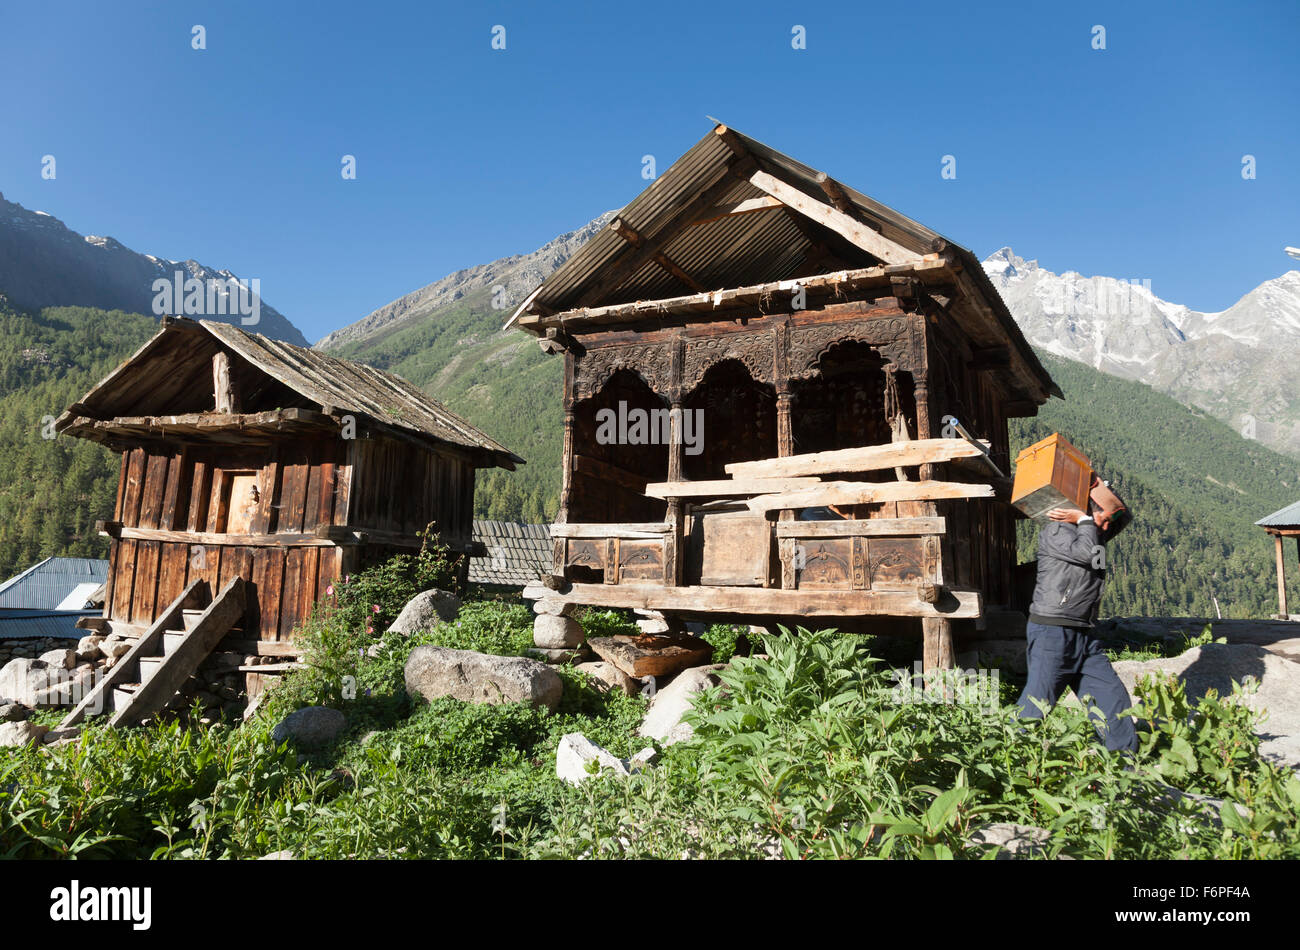 The village of Chitkul at the last inhabited village on the Indo-China border Himachal Pradesh, Northern India Stock Photo